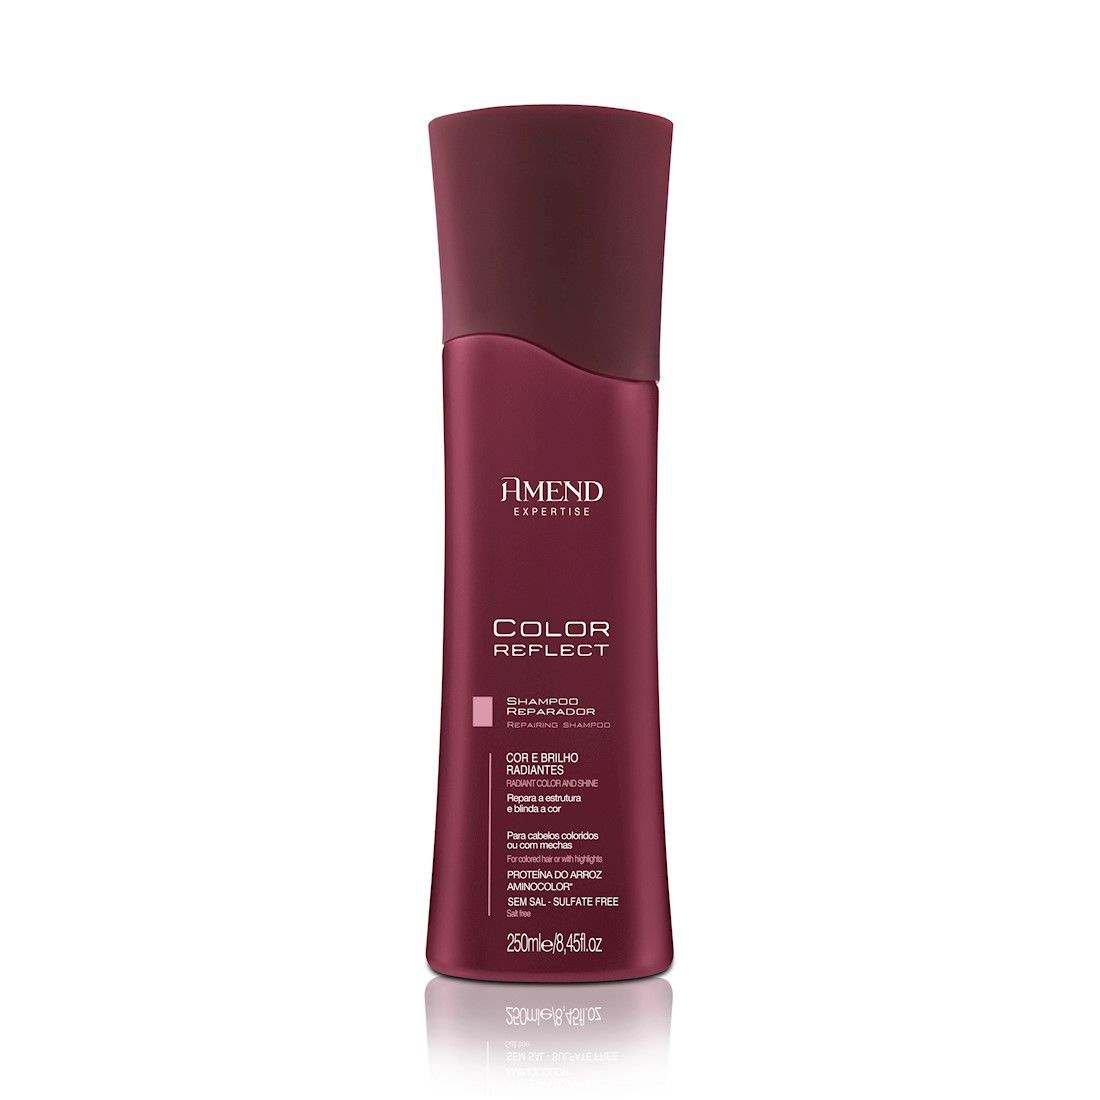 Amend Shampoo Treatment Expertise Color Reflect 250mL